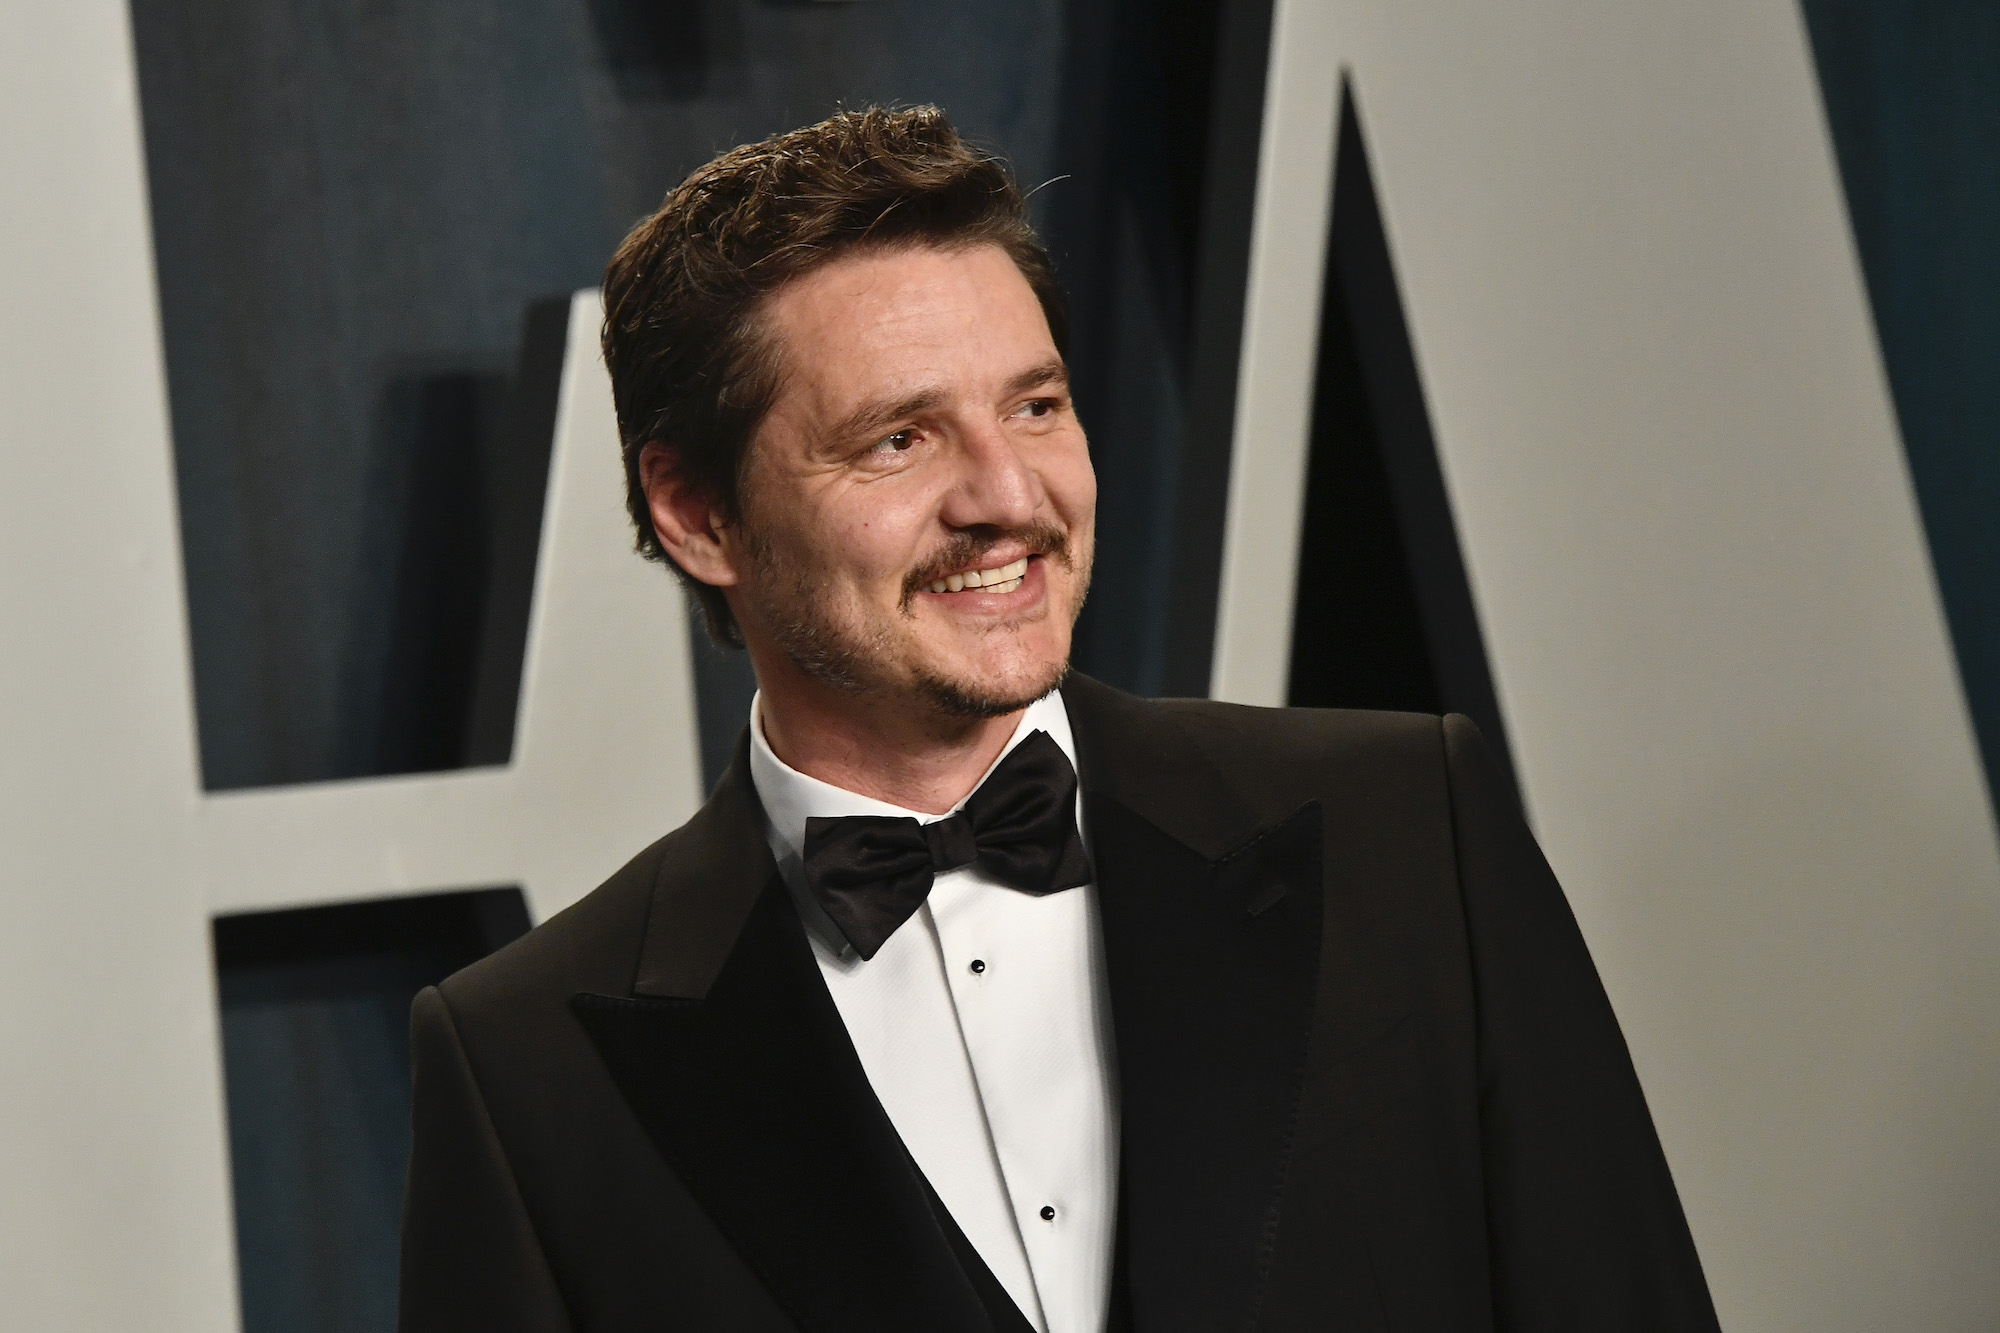 Pedro Pascal at the Vanity Festival 2020 Oscar Party at the Wallis Annenberg Center for the Performing Arts on February 09, 2020